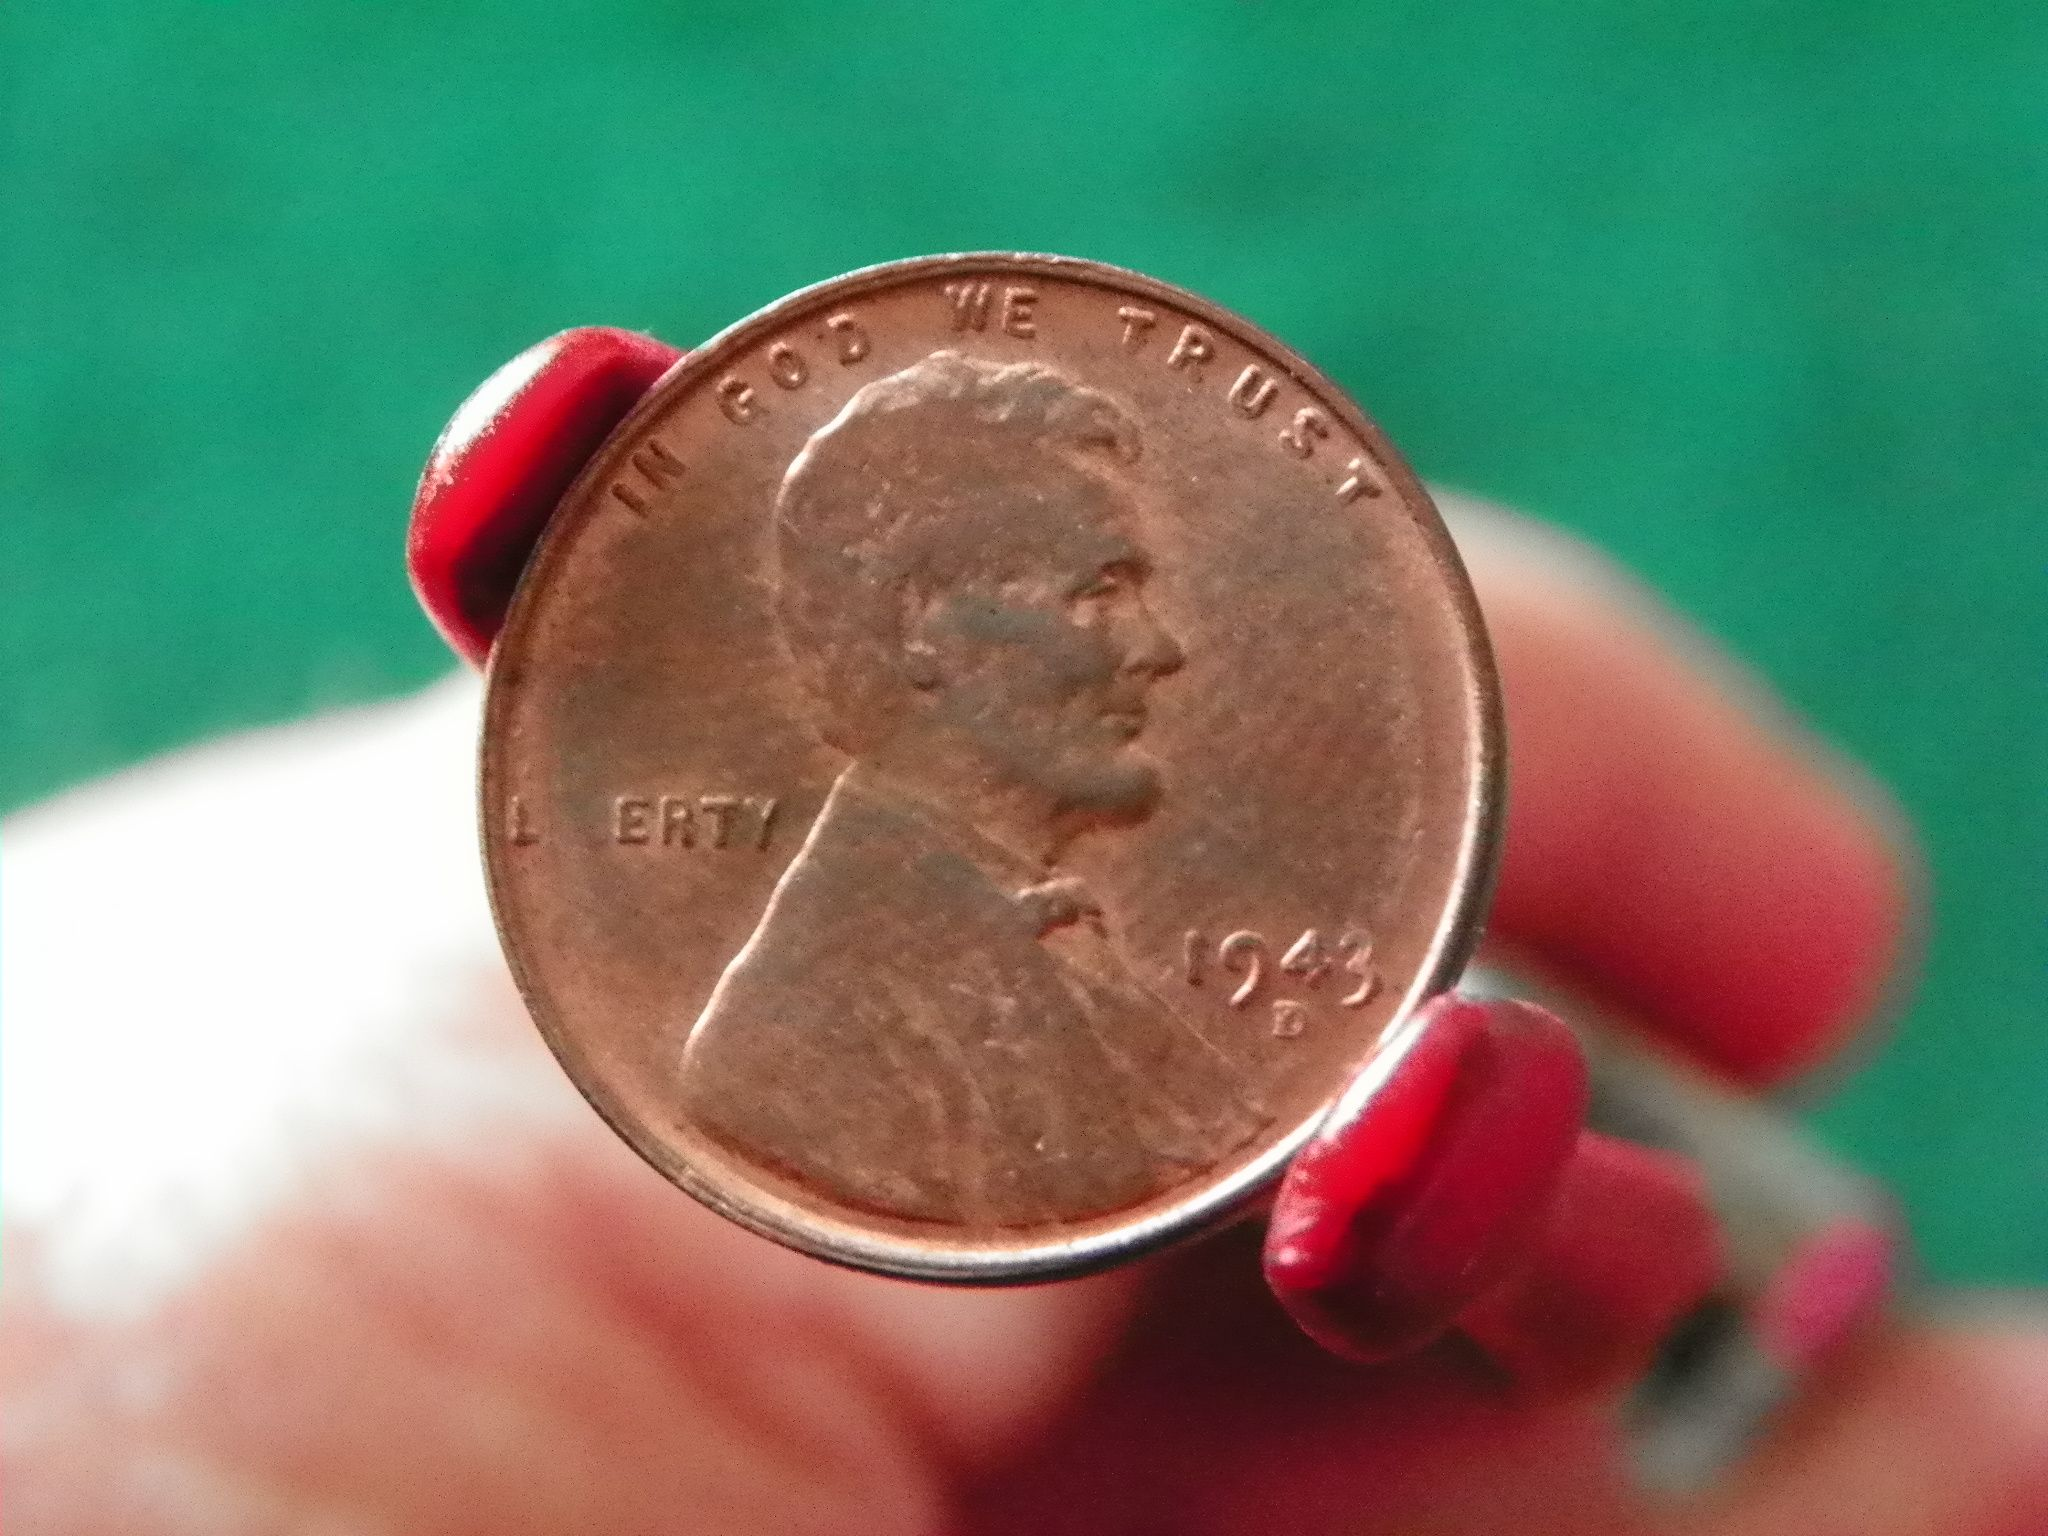 1943 D Copper Lincoln Wheat Cent Copy Stamped On Reverse For Sale Buy Now Online Item